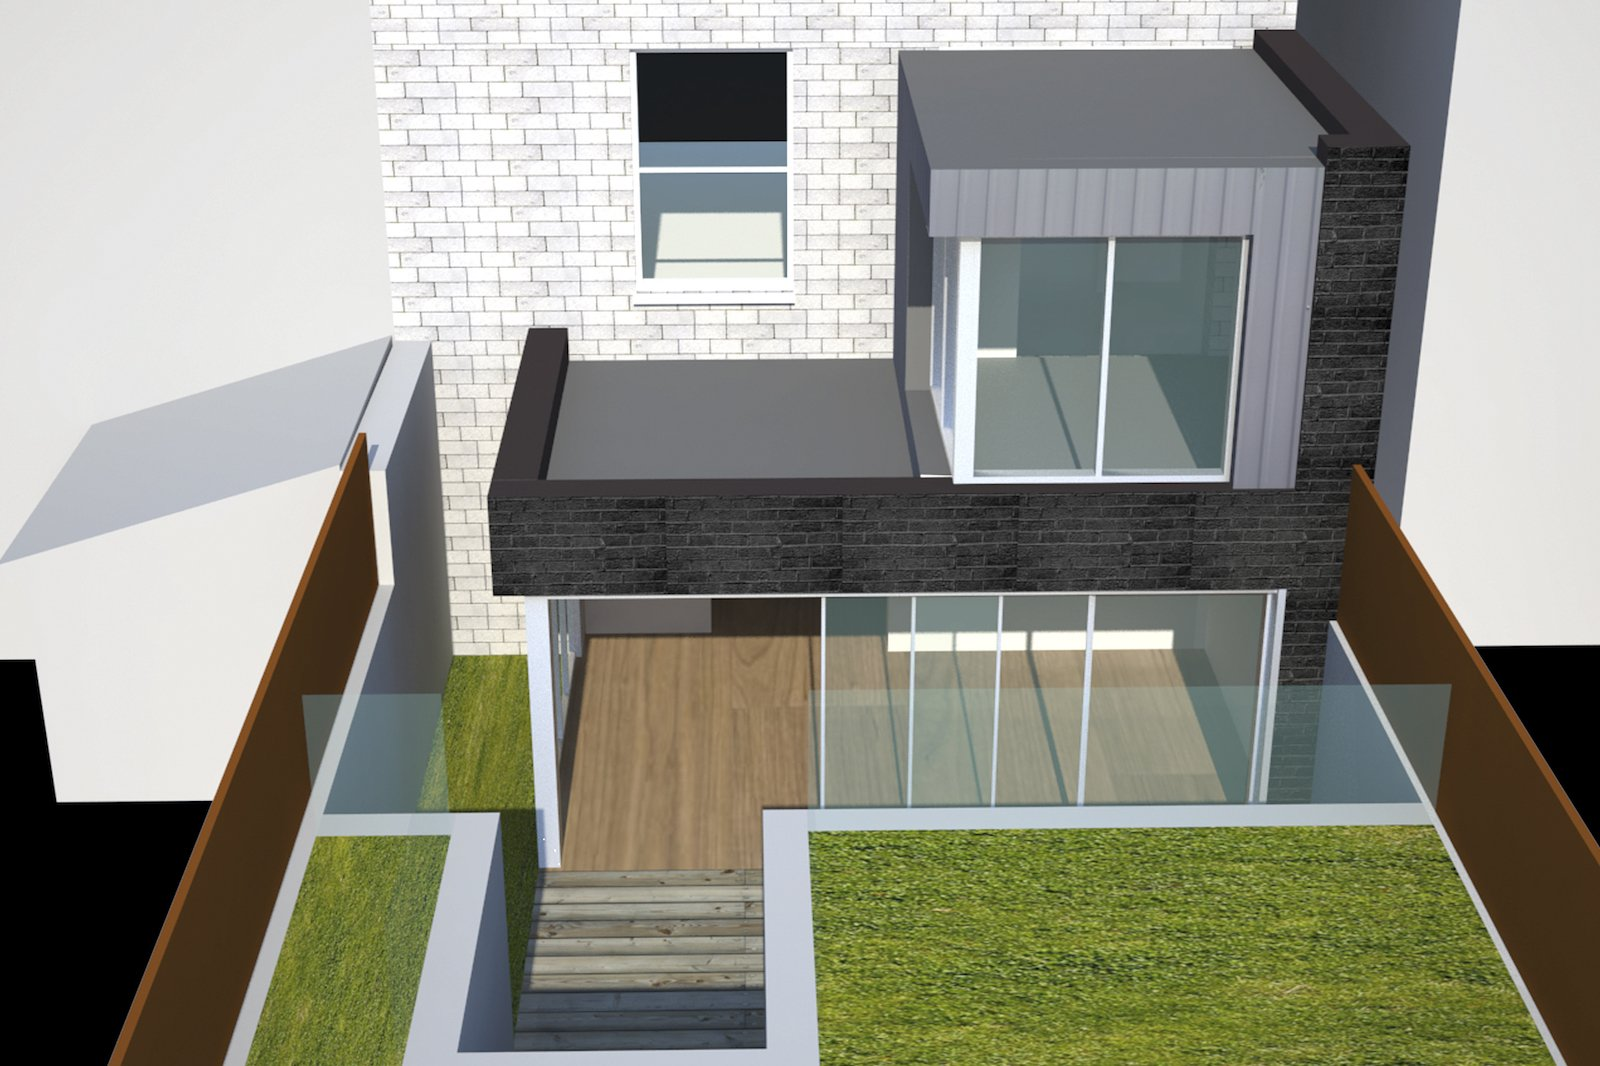 Architect designed two storey house extension Brockley Lewisham SE4 – Design rear elevation 3D Brockley, Lewisham SE4 | Two storey house extension